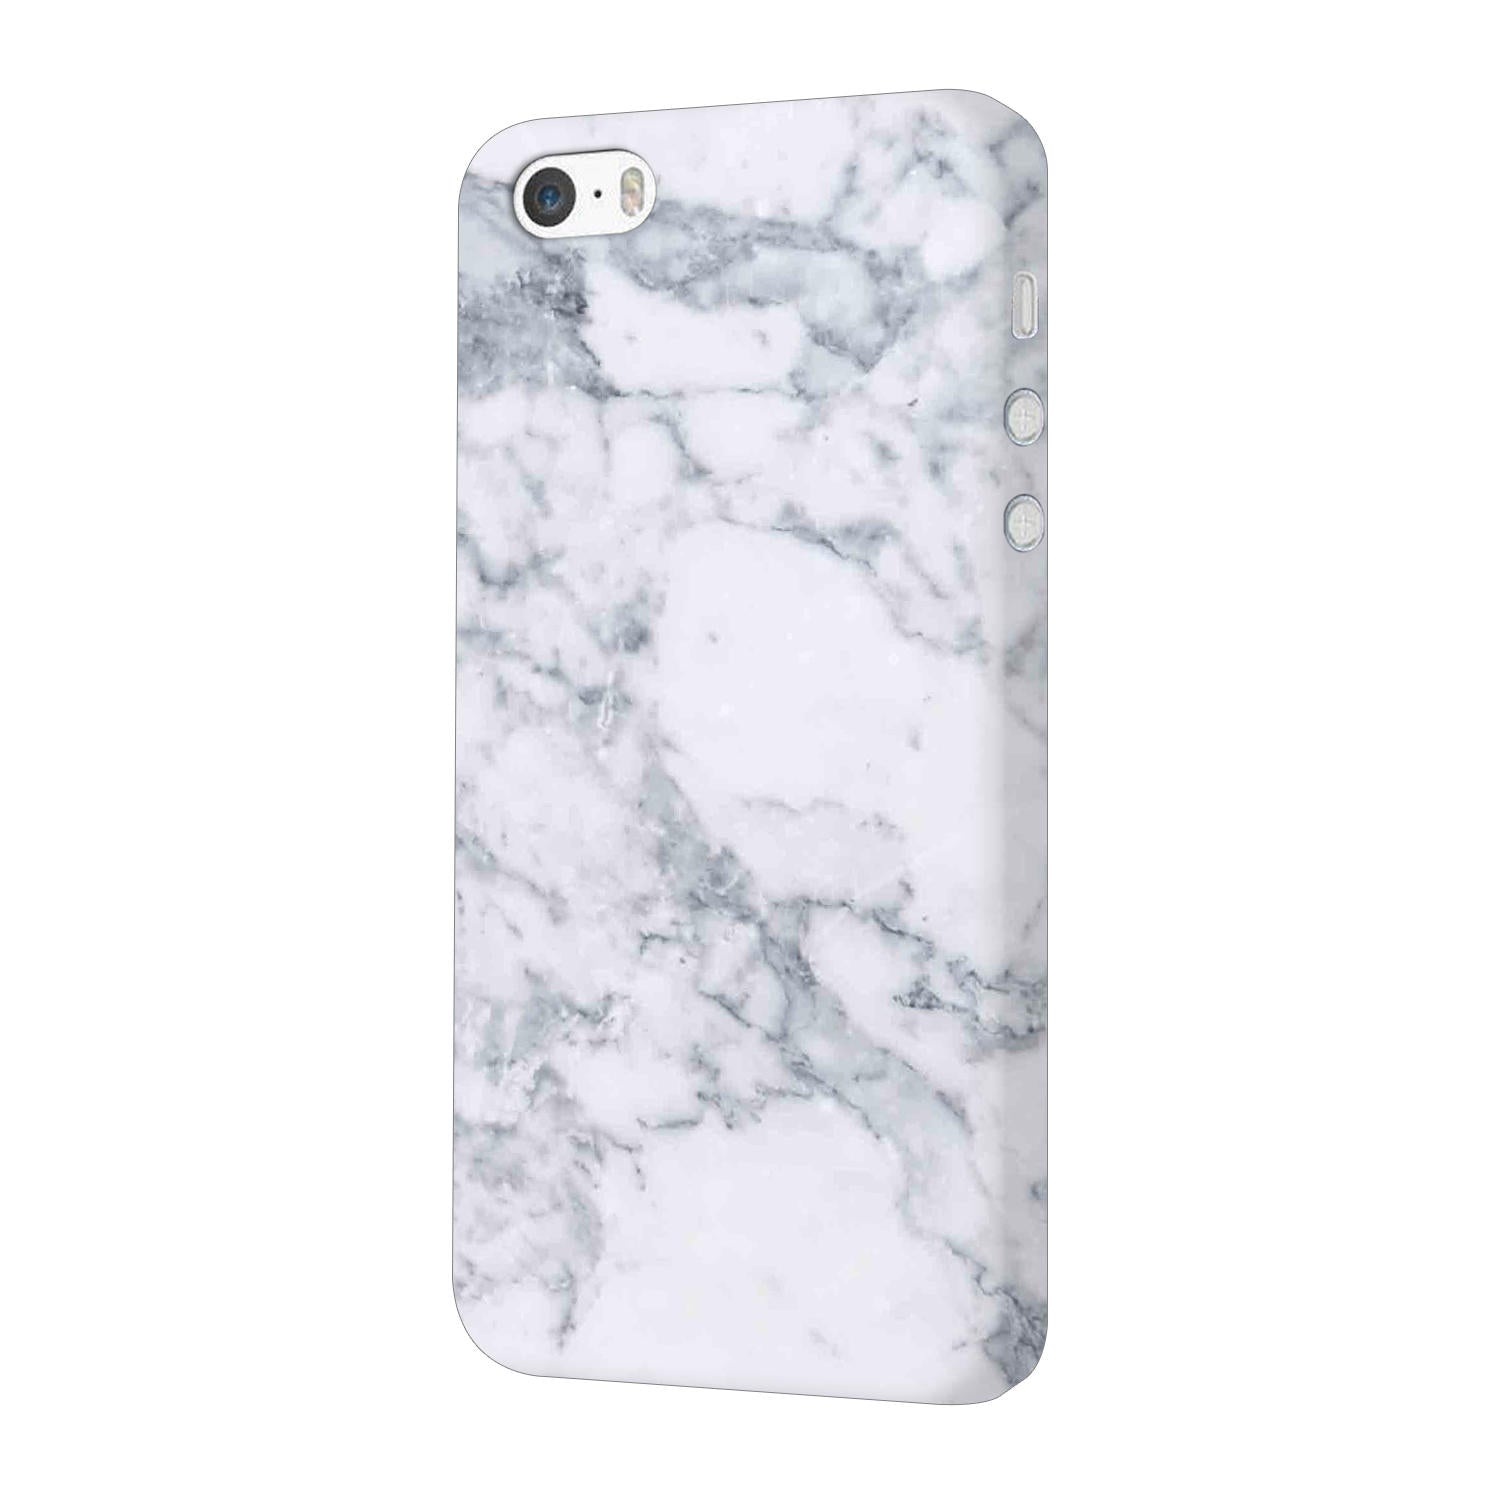 Chic White Marble iPhone 5 Mobile Cover Case